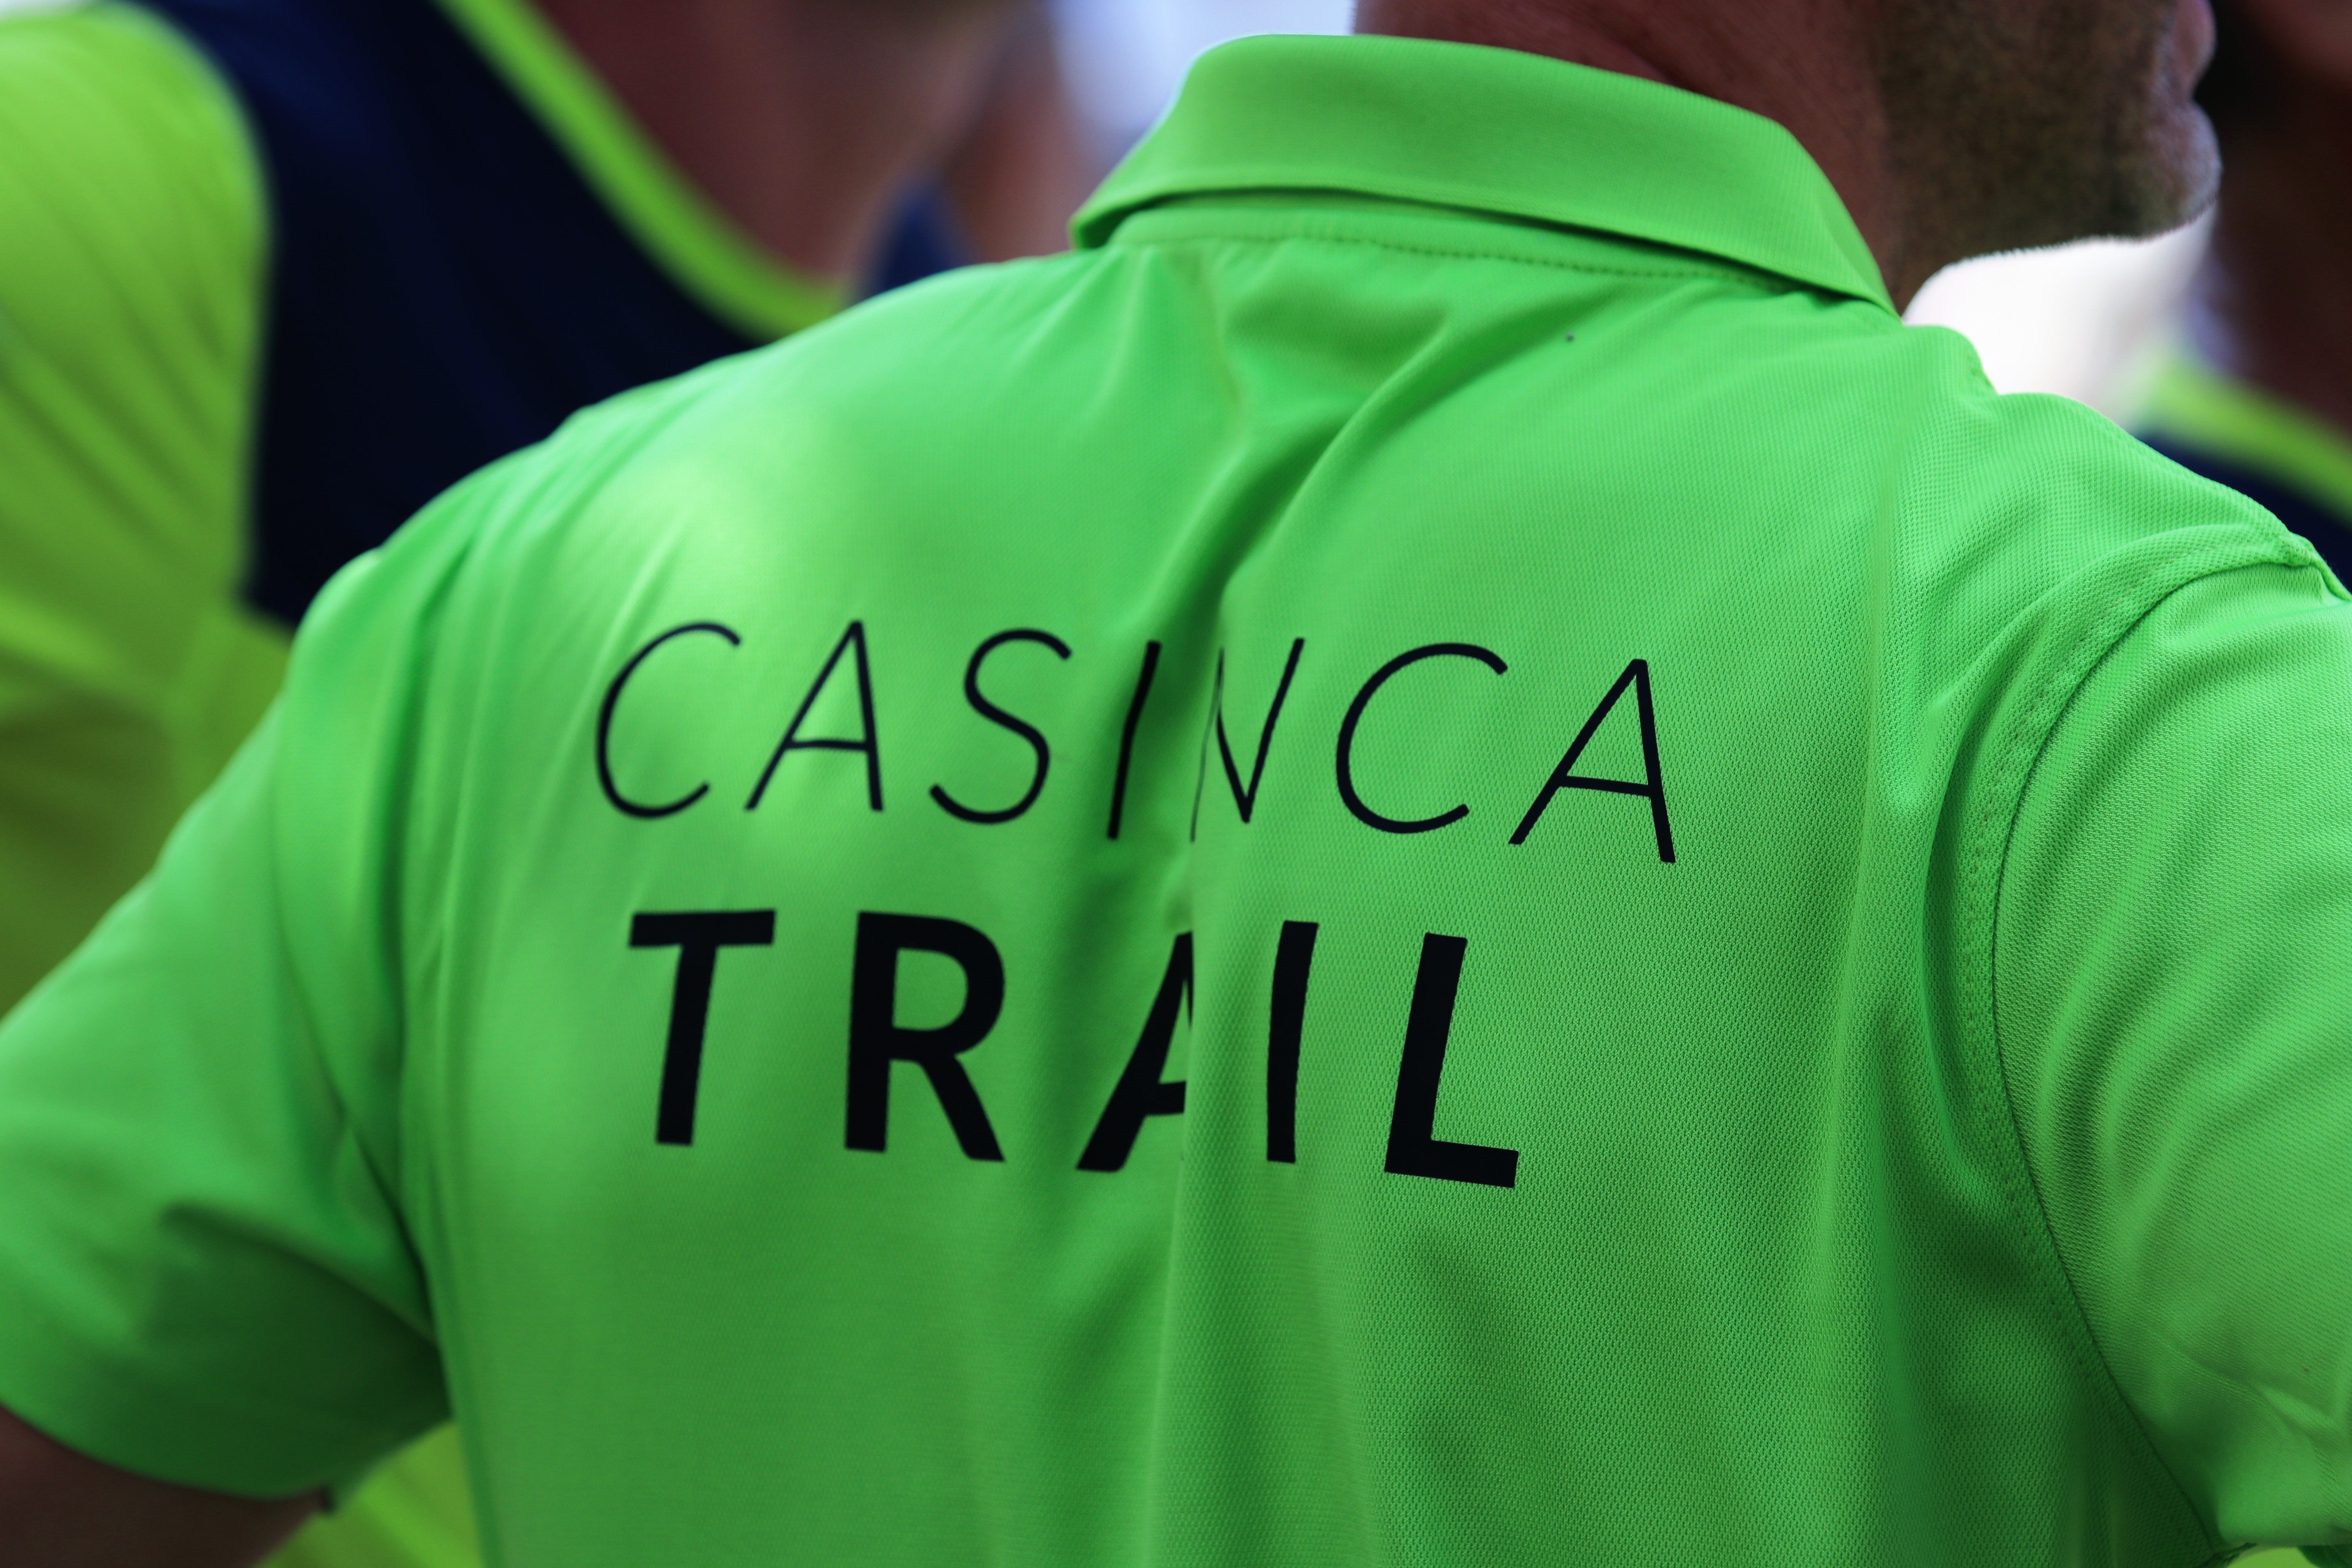 Casinca Trail 2018